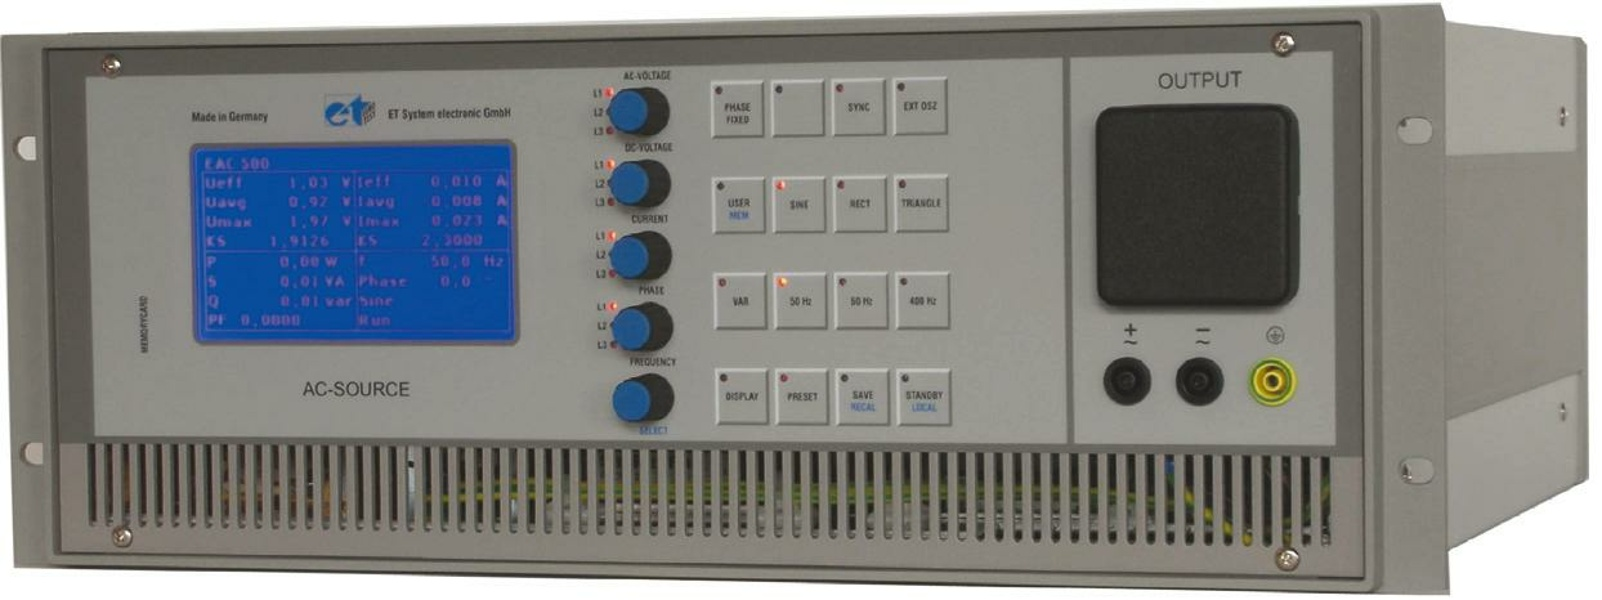 ETS EAC-S 250 - 10000 VA Single phase Electronic AC Power Sources